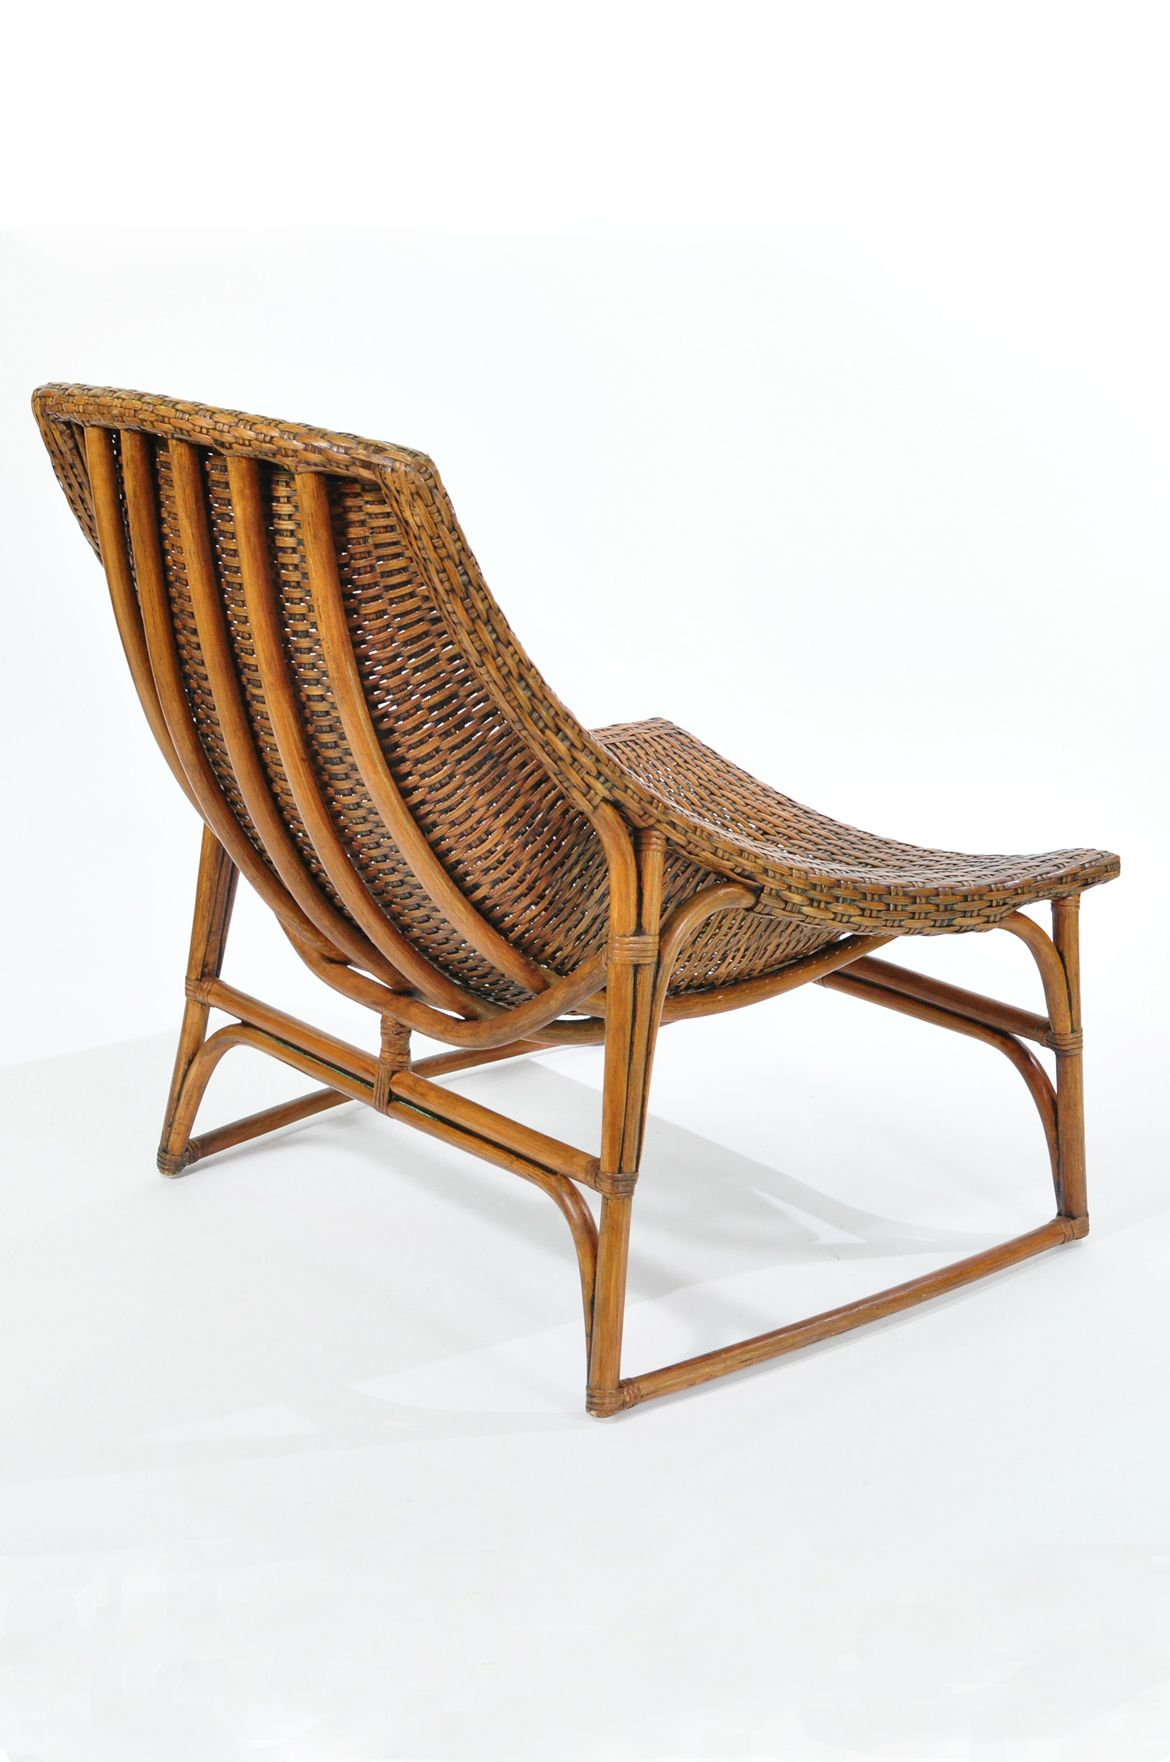 awesome chairs rattan furniture round inpiration chair ideas homely